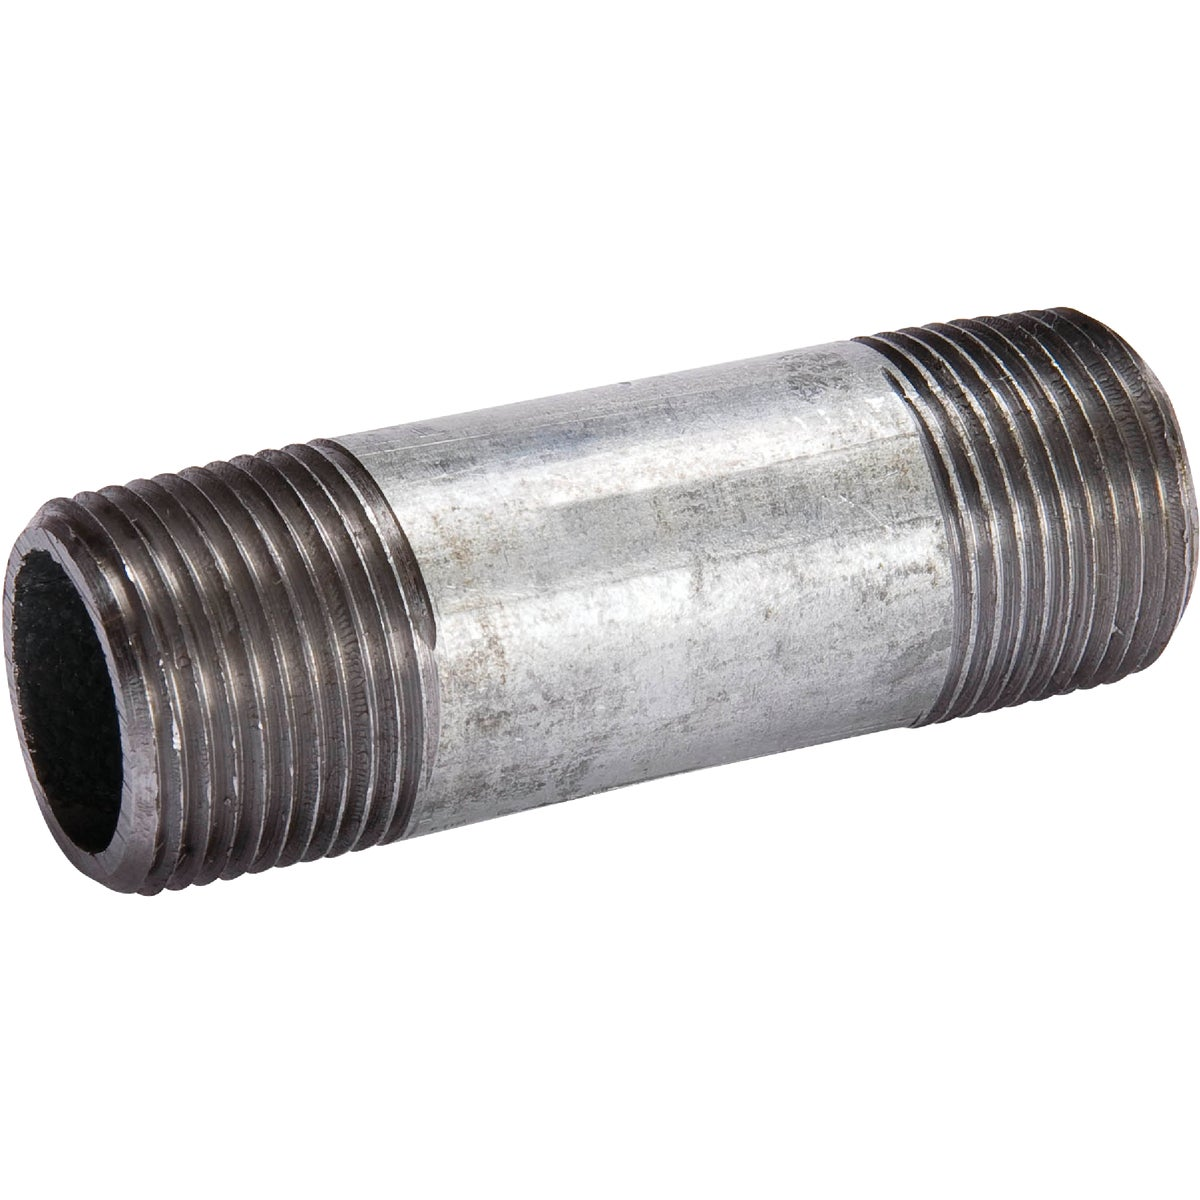 1-1/4X8 GALV NIPPLE - 10712 by Southland Pipe Nippl